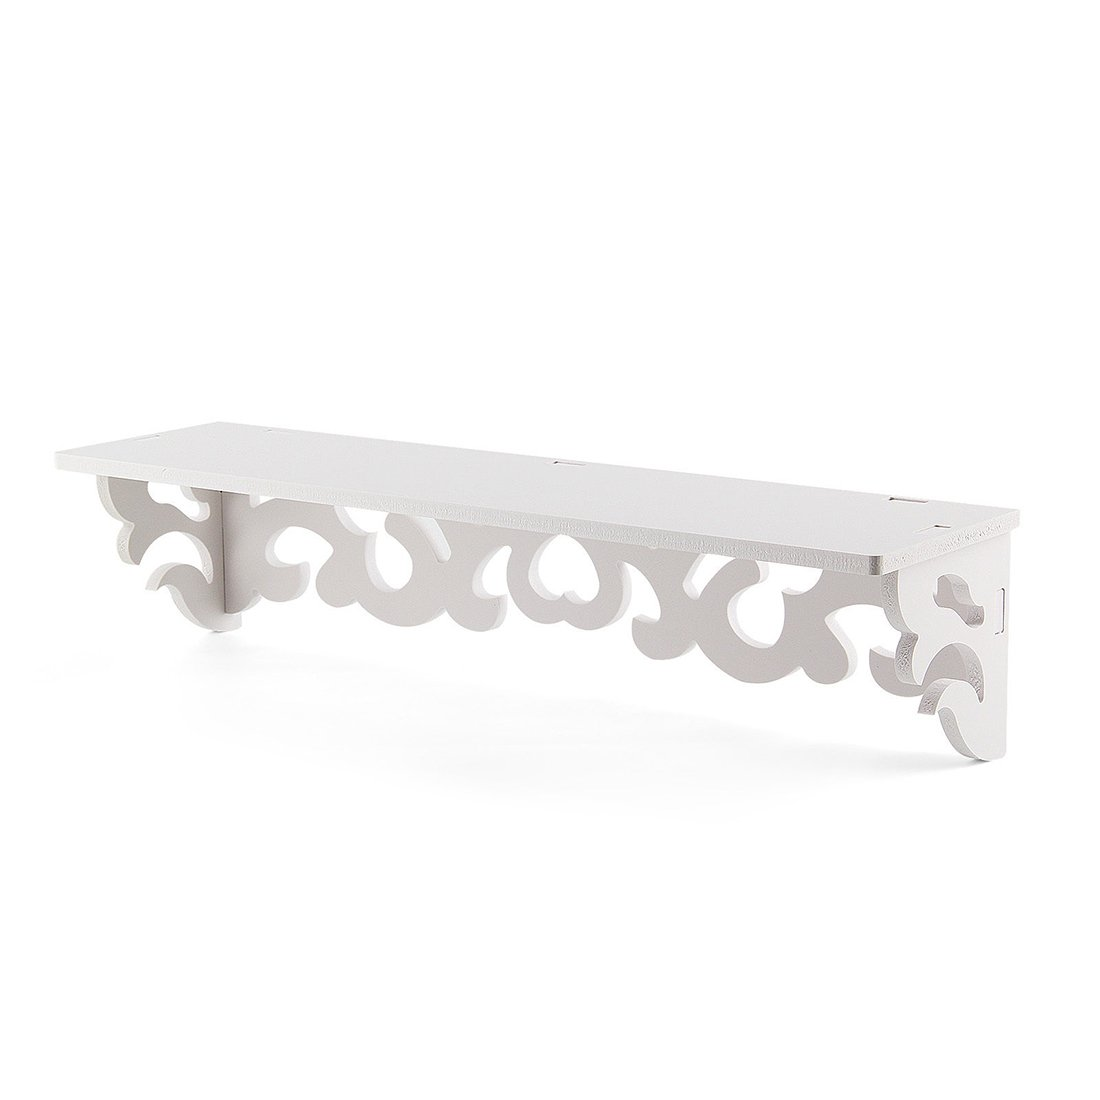 SODIAL(R) Set of 2 White Shabby Chic Filigree Style Shelves Cut Out Design Wall Shelf Home